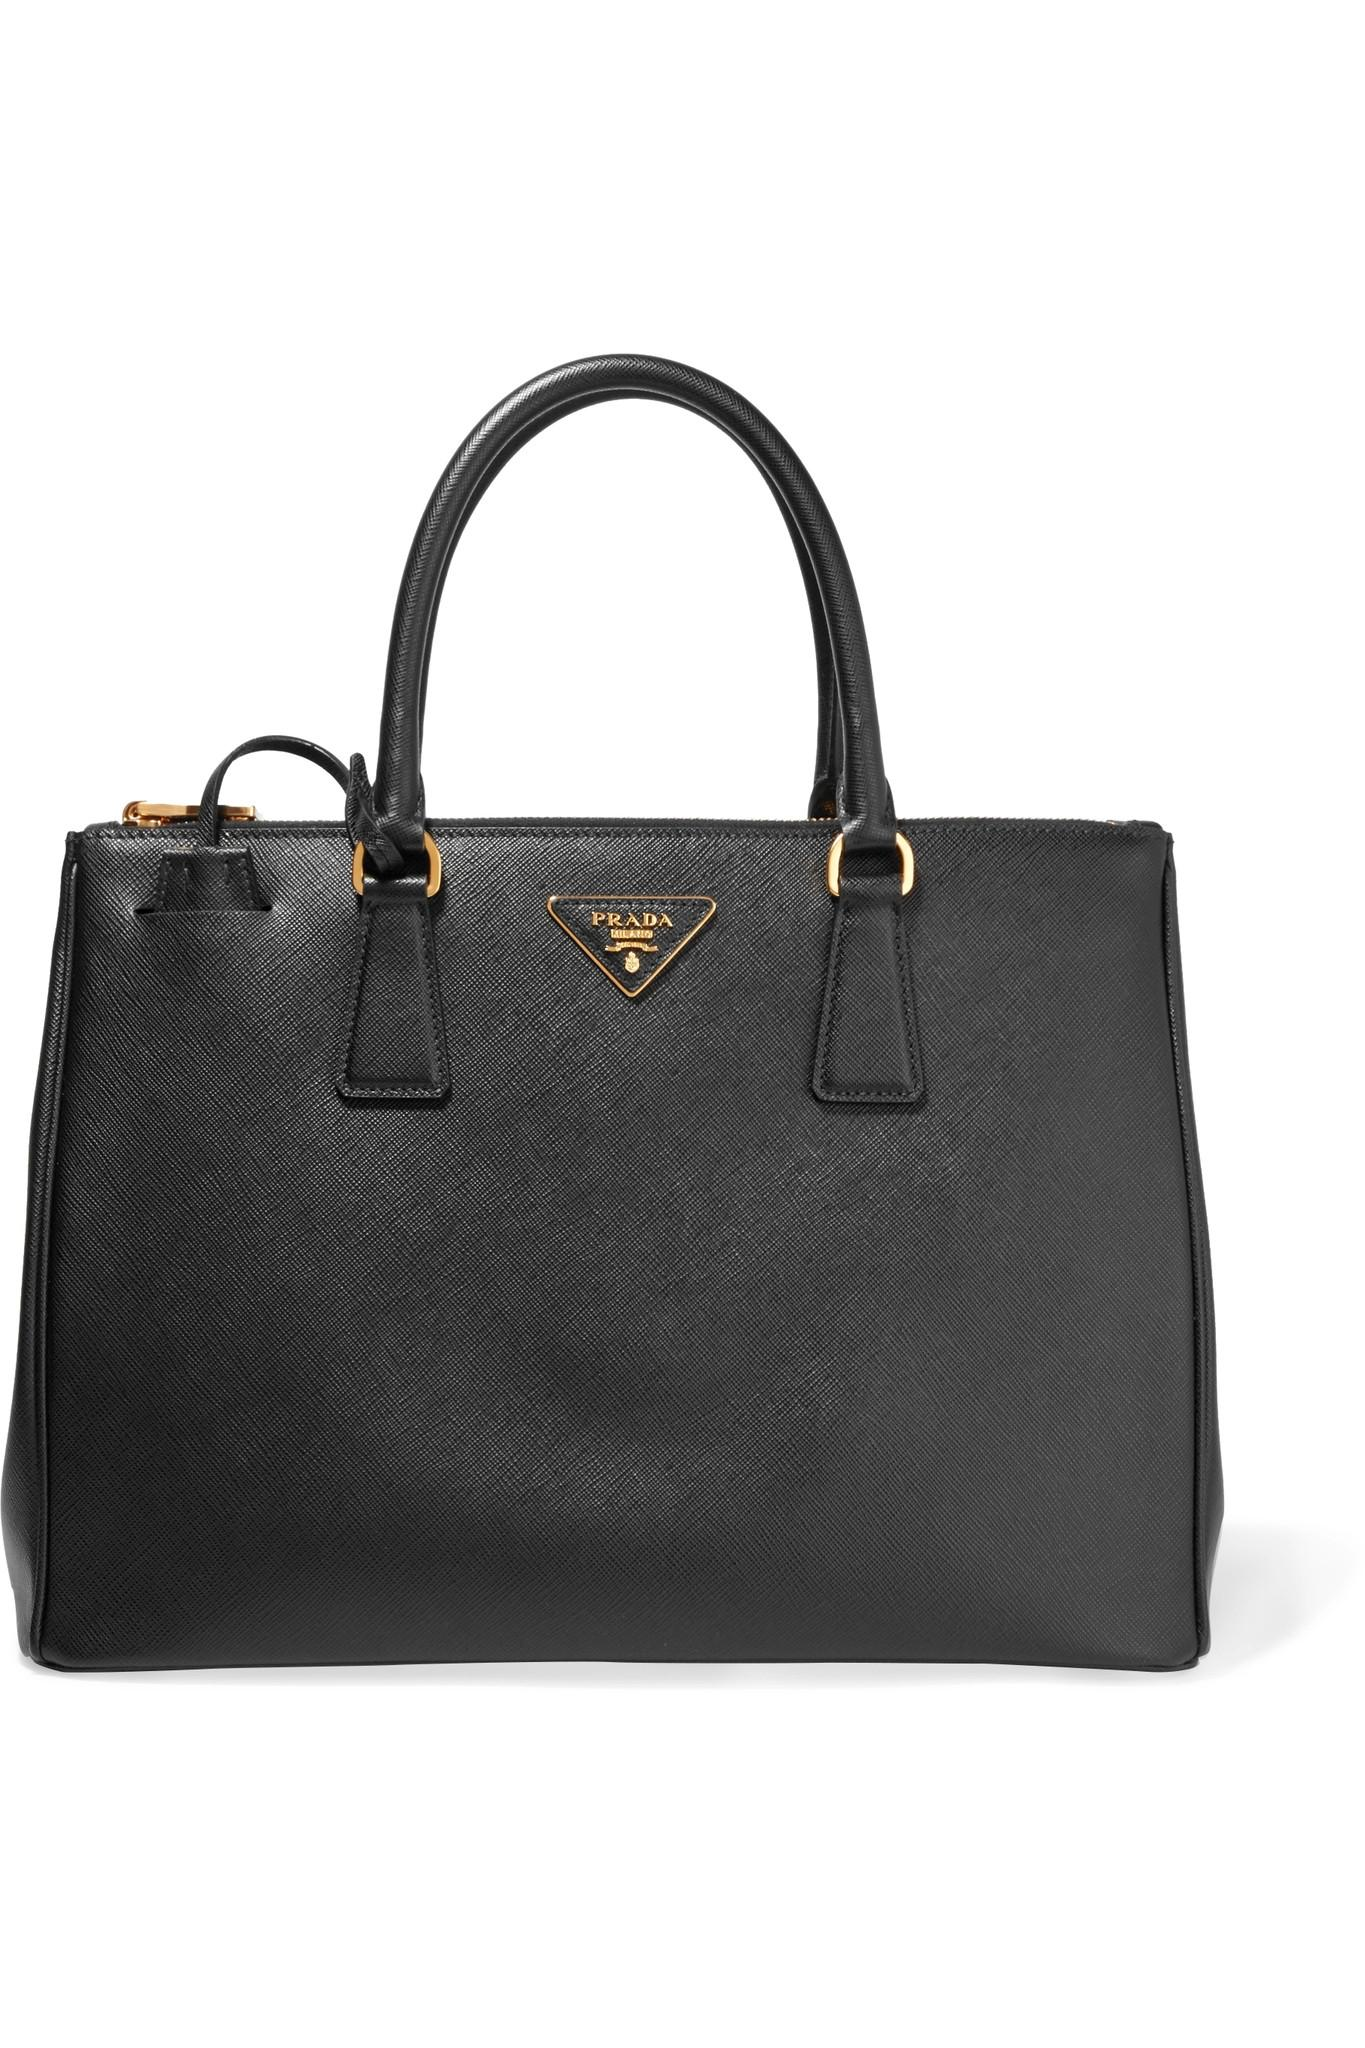 Le Meilleur Prada Galleria Large Textured Leather Tote In Black Lyst Ce Mois Ci